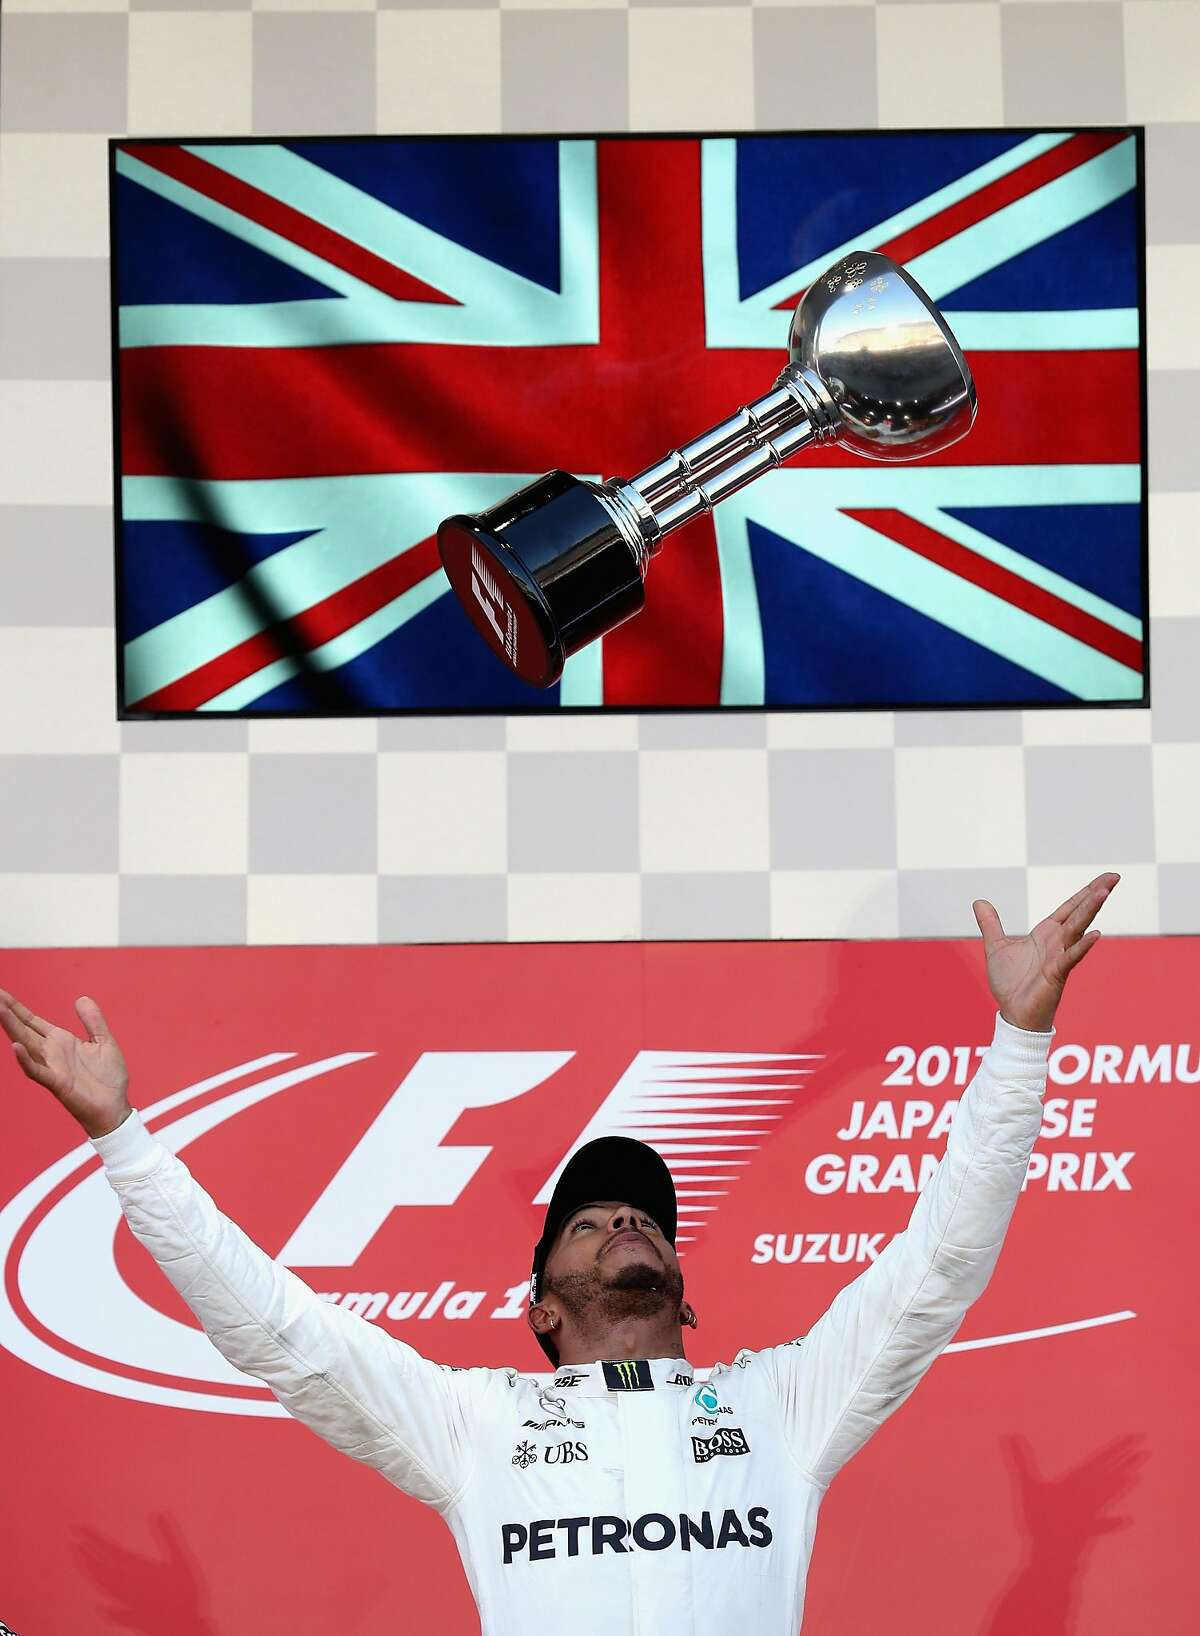 SUZUKA, JAPAN - OCTOBER 08: Race winner Lewis Hamilton of Great Britain and Mercedes GP celebrates on the podium during the Formula One Grand Prix of Japan at Suzuka Circuit on October 8, 2017 in Suzuka. (Photo by Mark Thompson/Getty Images) ***BESTPIX***